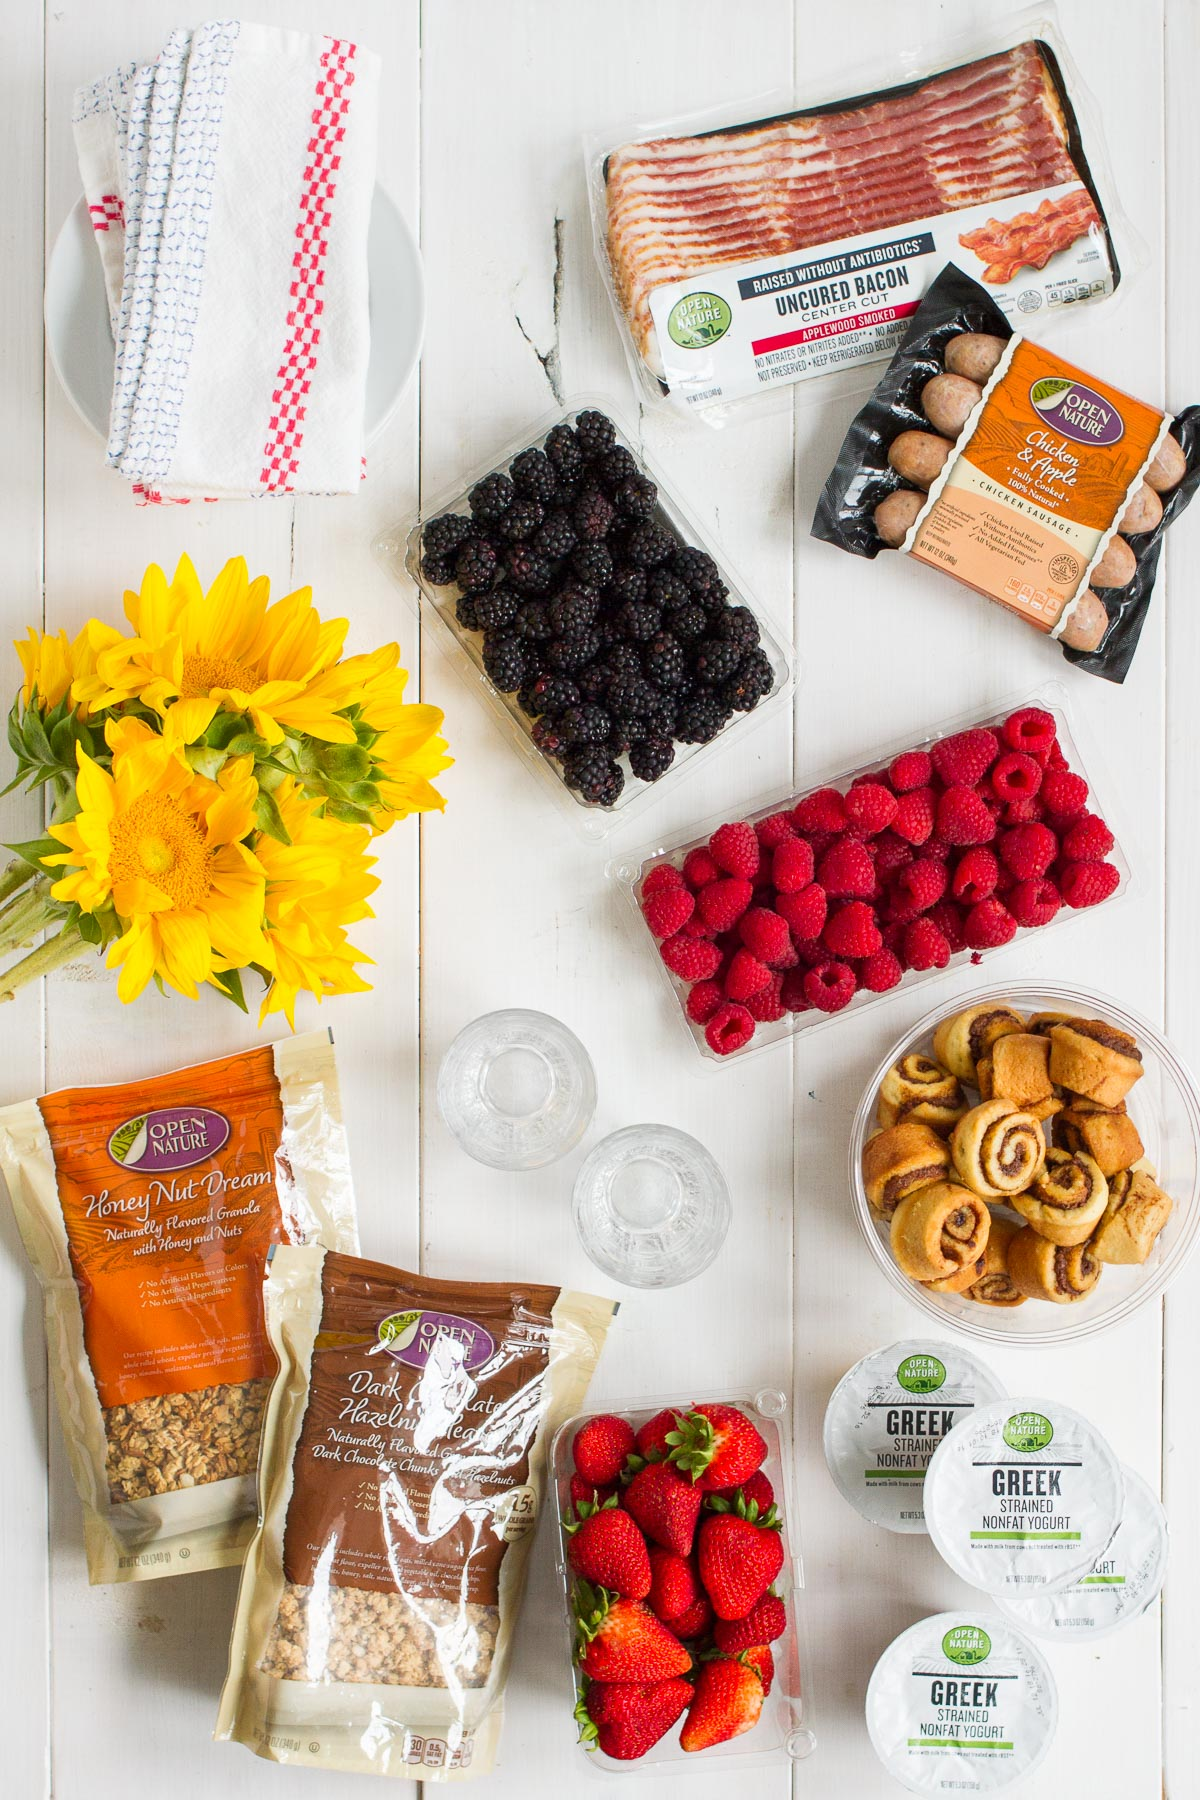 I'm sharing my tips for putting together an effortless summer brunch!